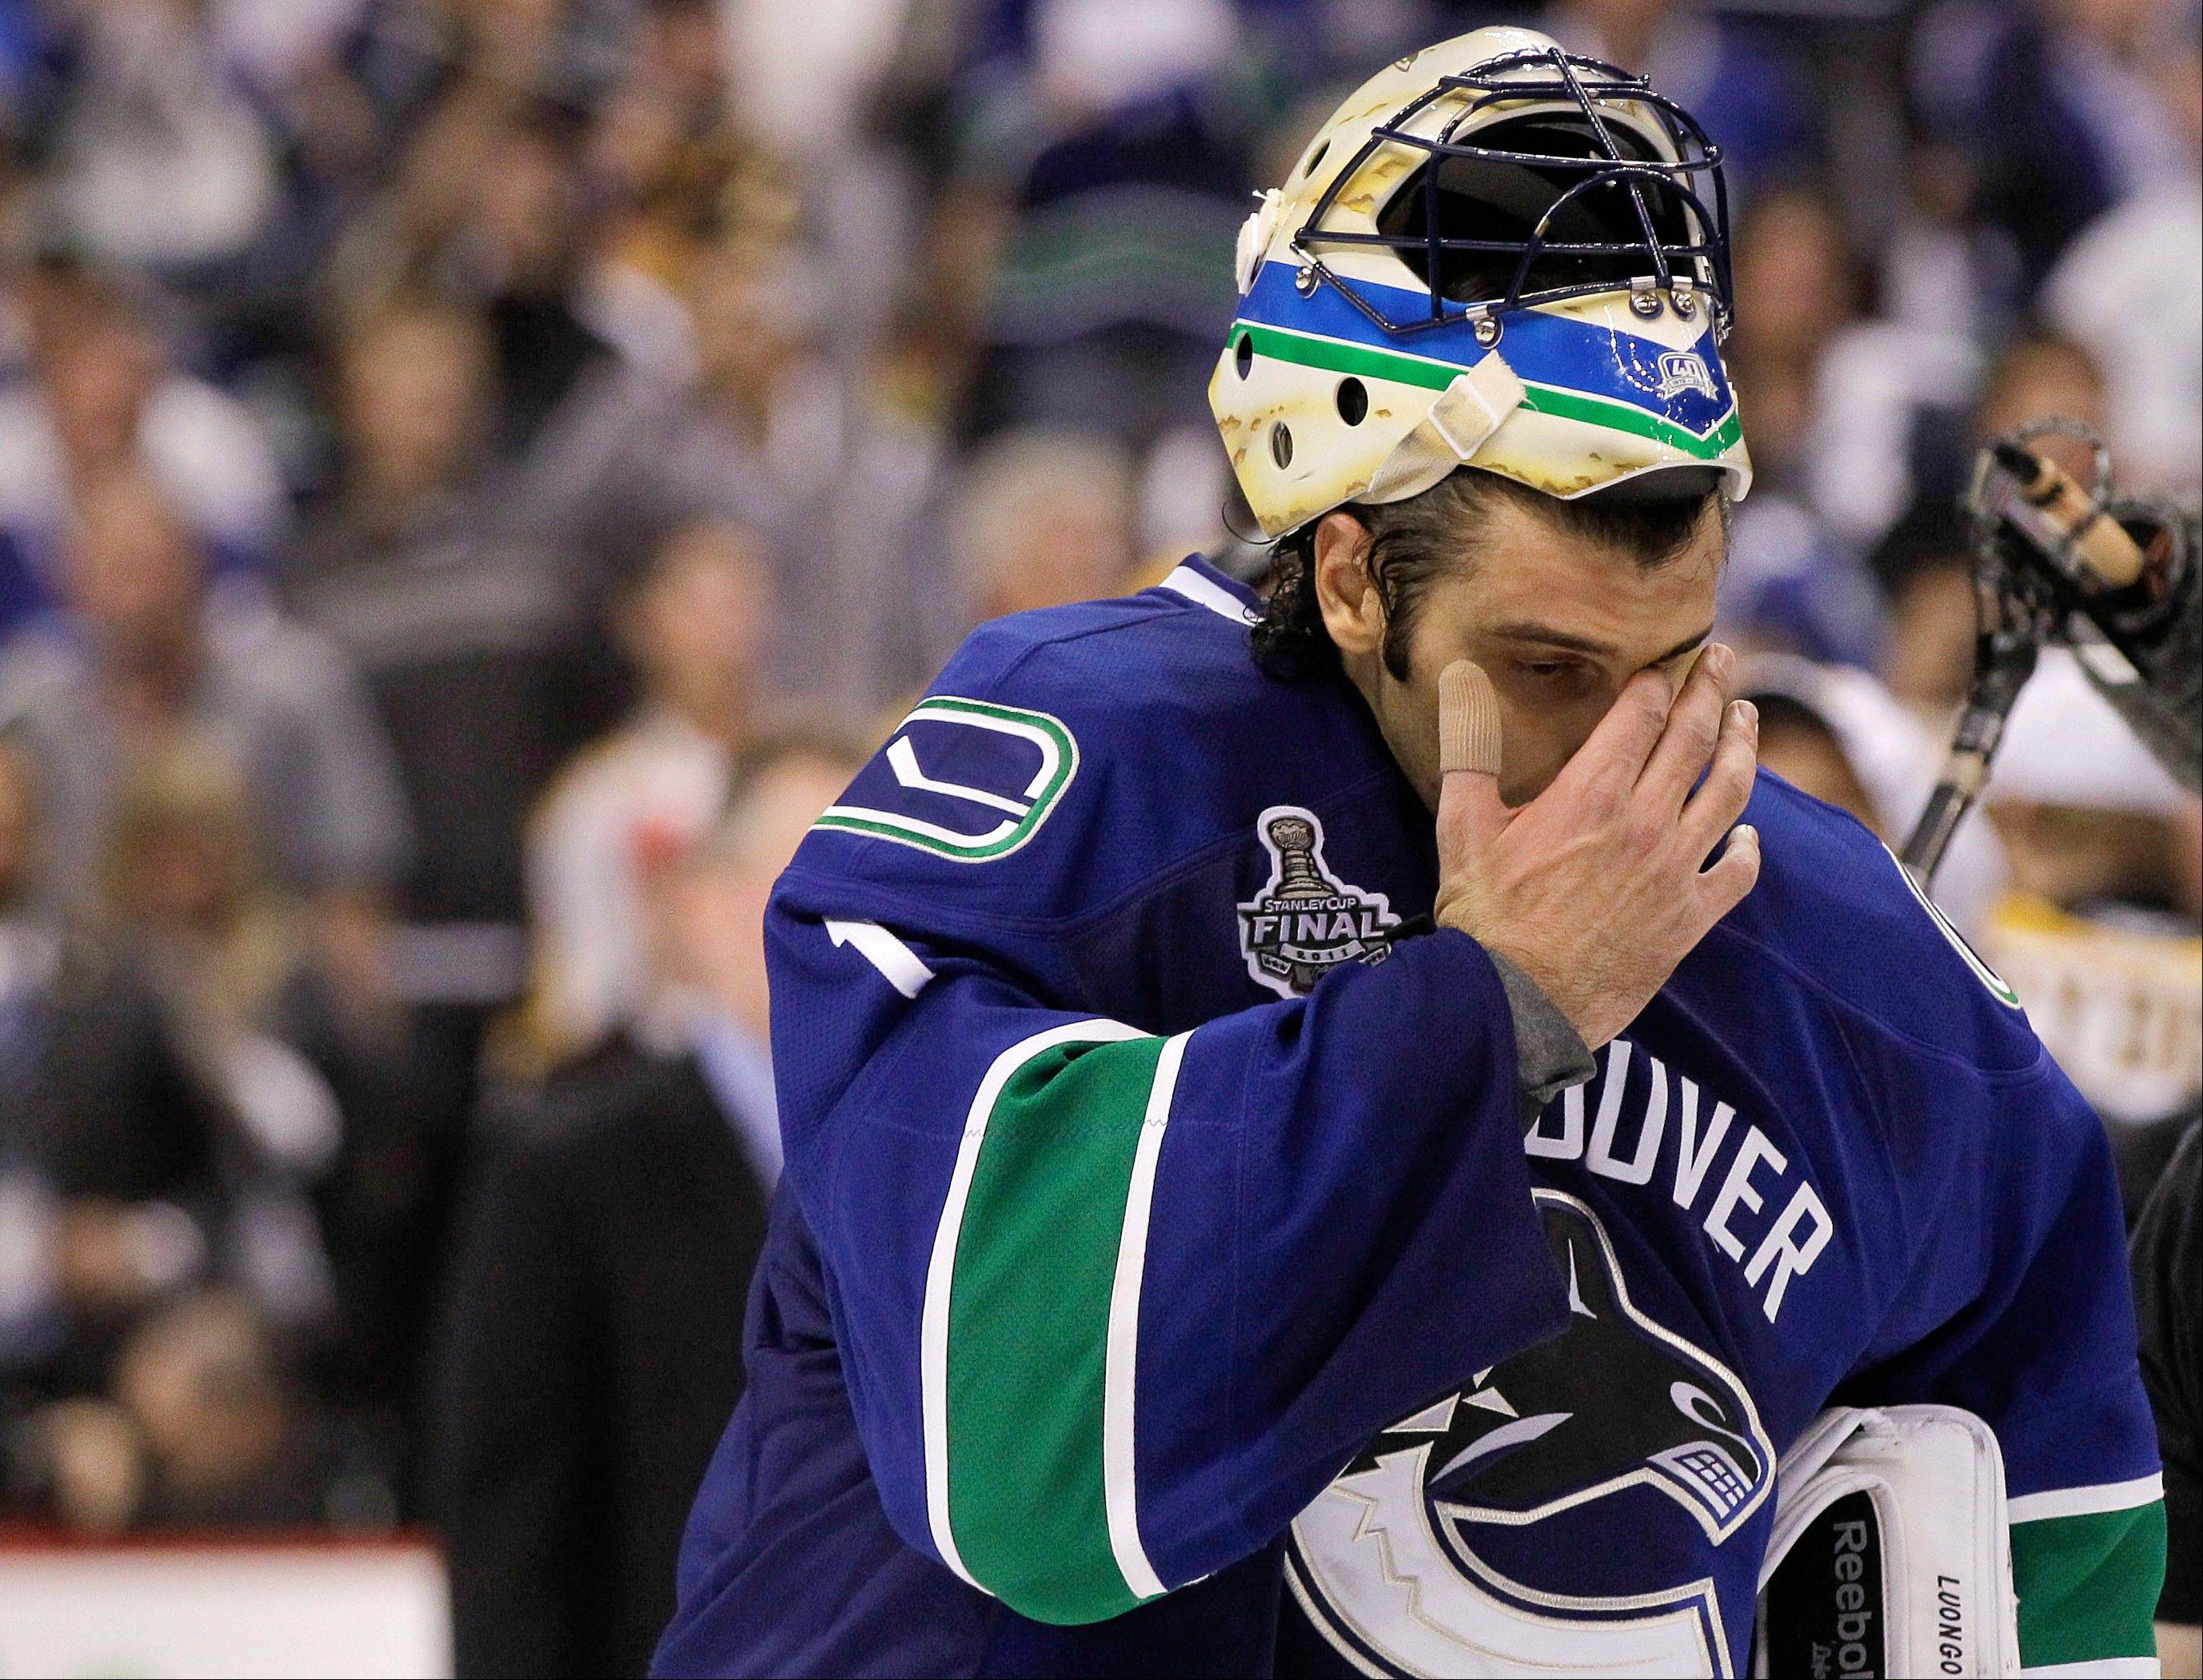 The rumors that Vancouver Canucks goalie Roberto Luongo could end up in Chicago are so far off the mark that they're worth a good laugh, says Daily Herald columnist Barry Rozner. Several online reports and endless Twitter postings gave the rumor plenty of legs Sunday night.